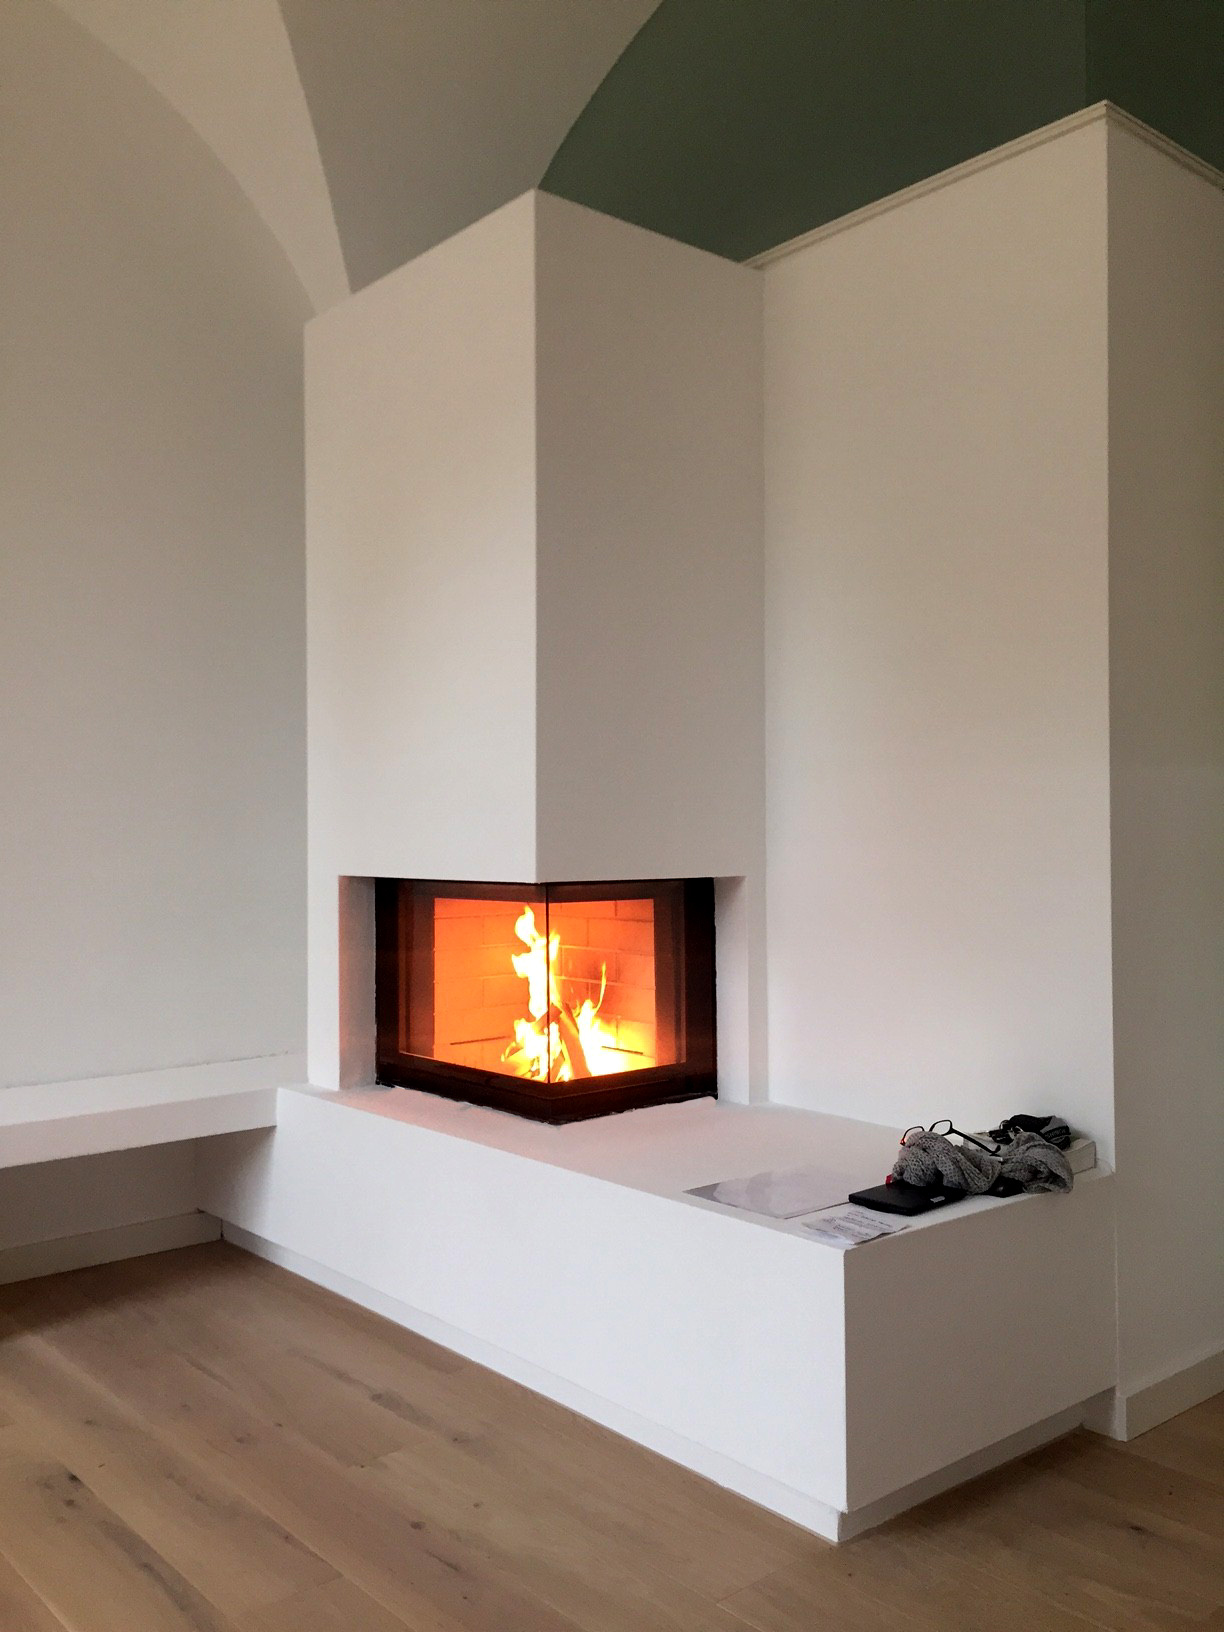 bespoken contemporary fireplace. Black Bedroom Furniture Sets. Home Design Ideas